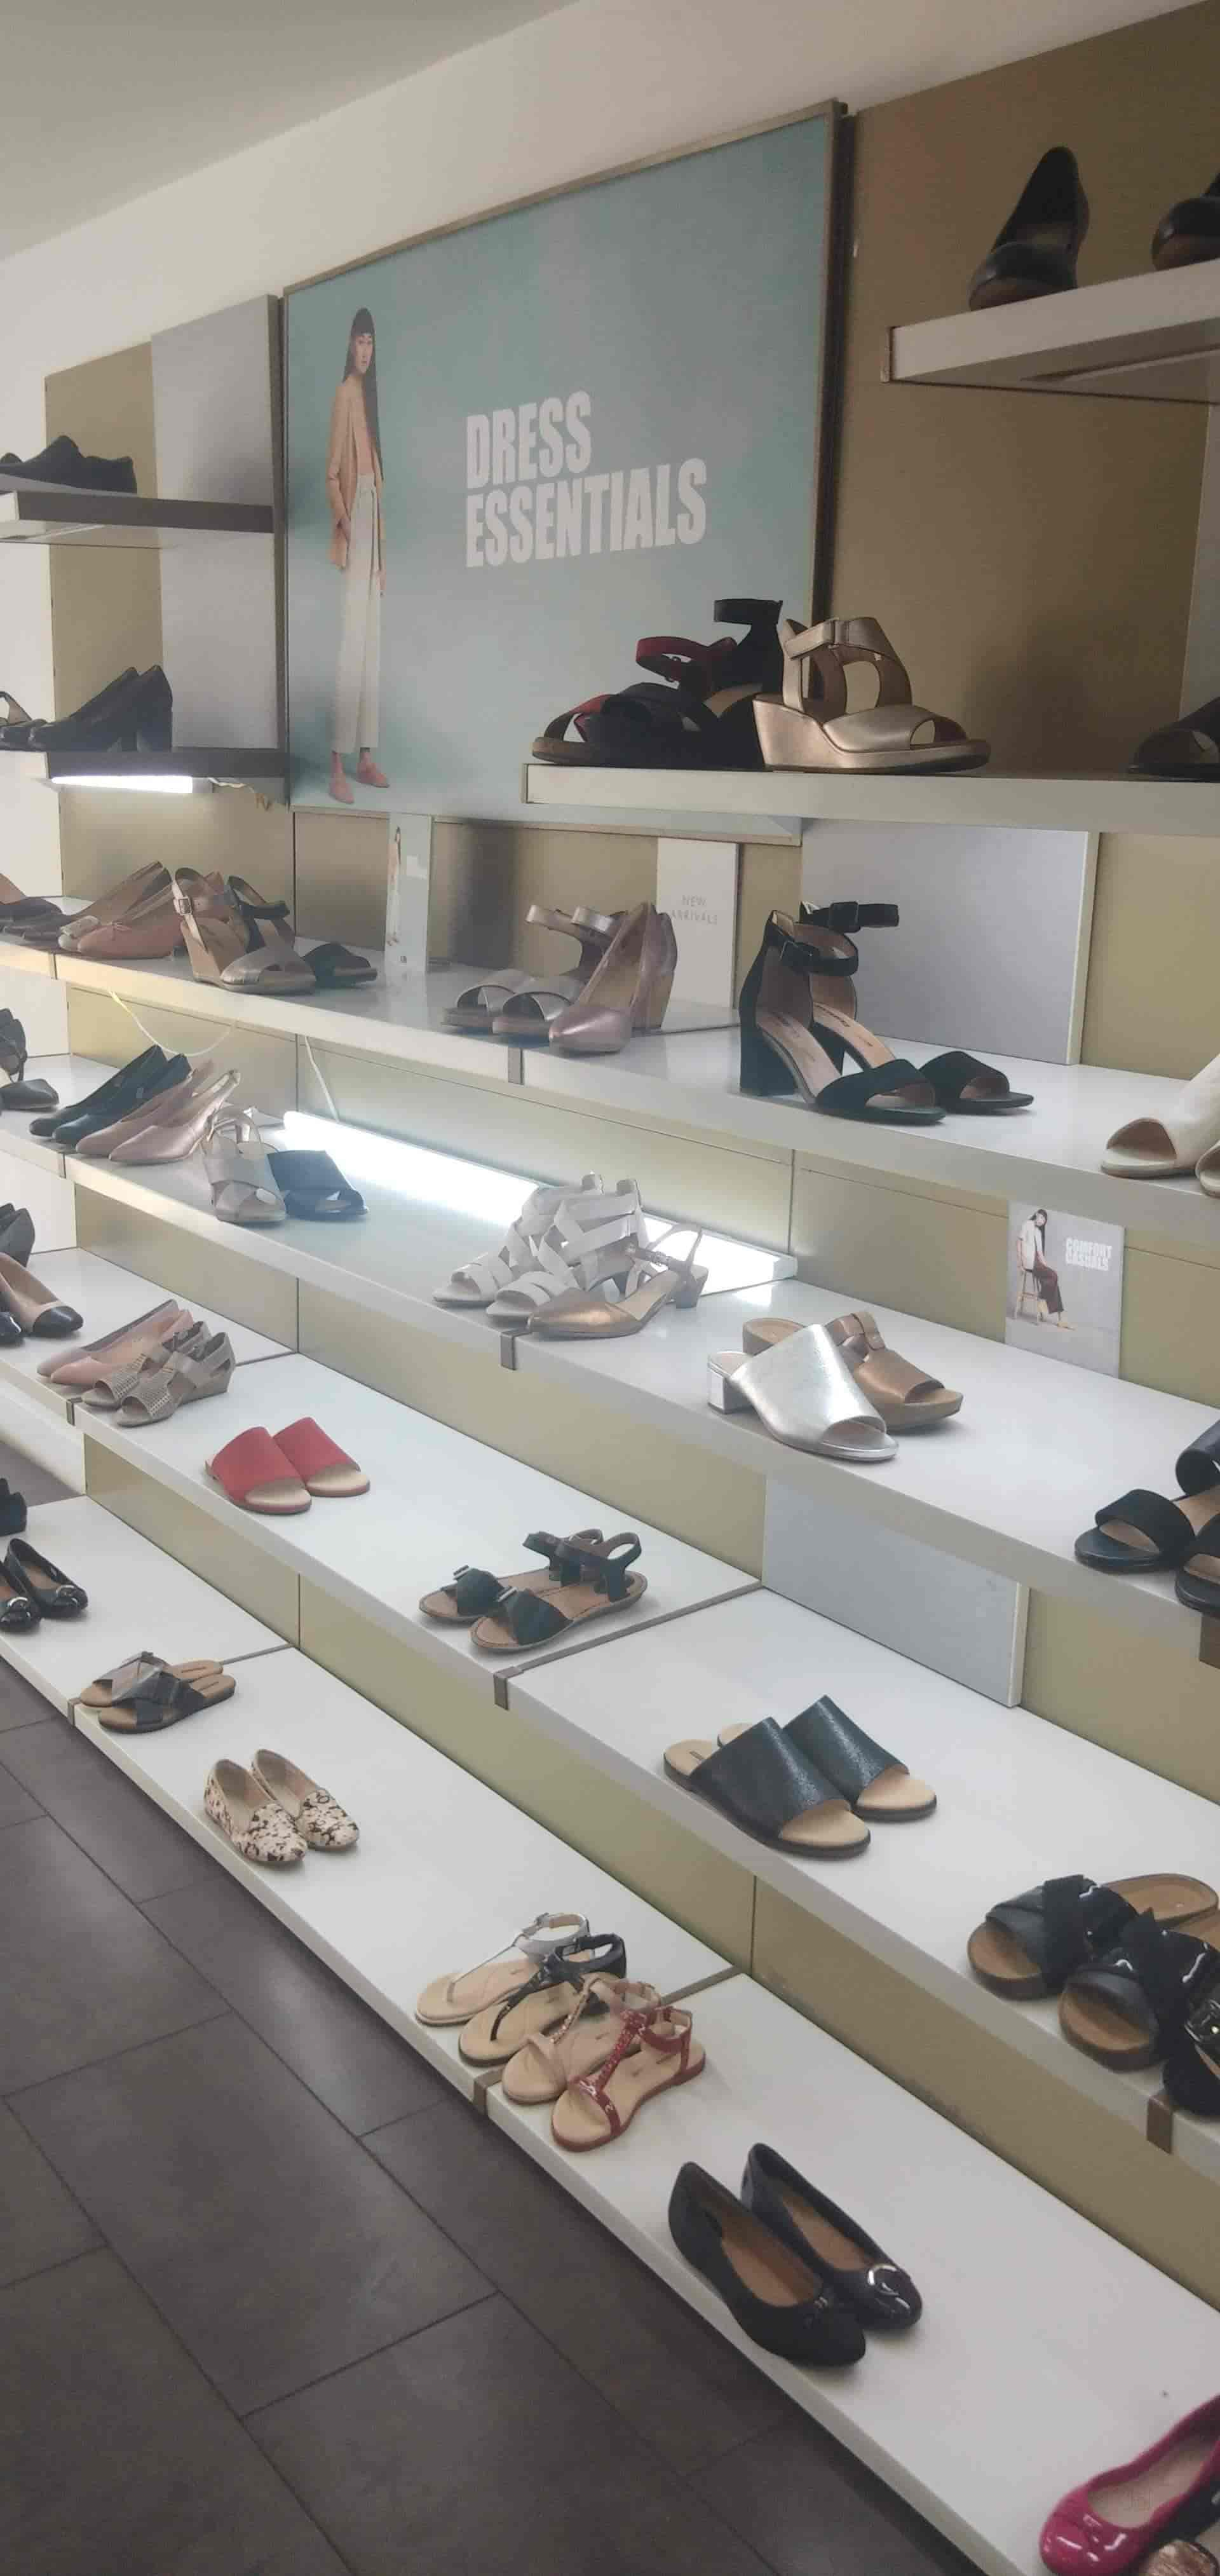 fd89fc57 Clarks Store, C G Road - Shoe Dealers in Ahmedabad - Justdial